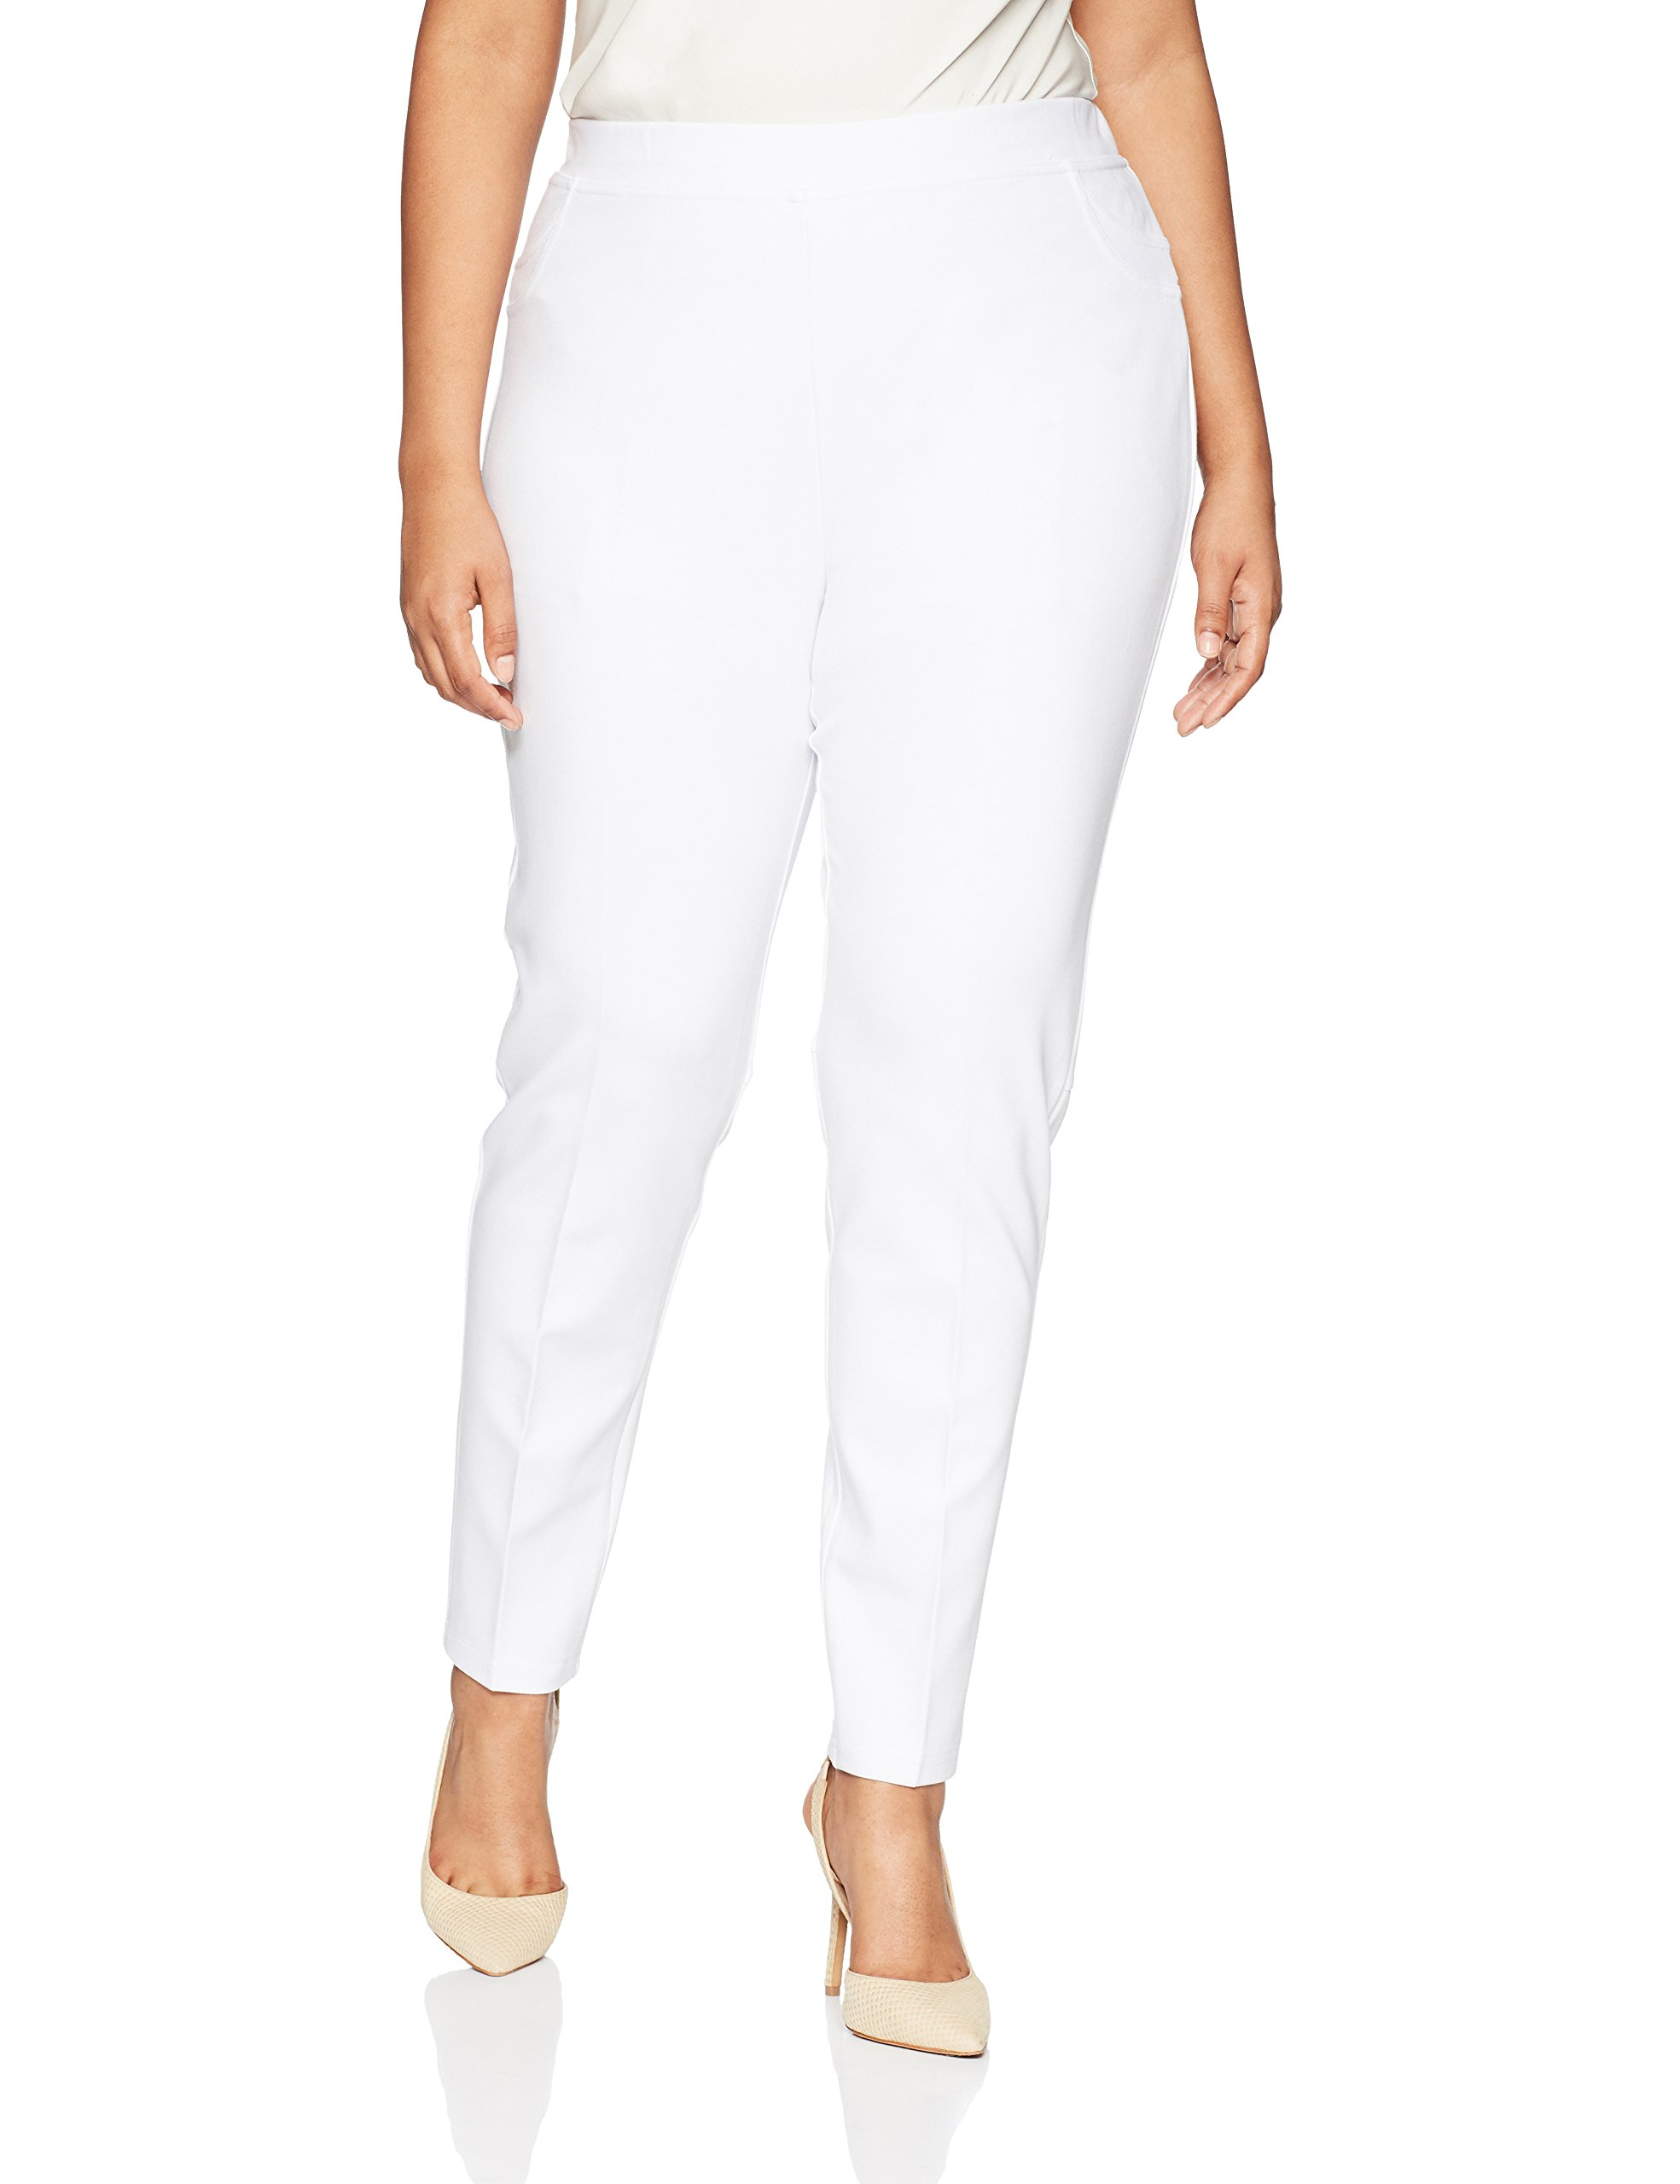 SLIM-SATION Women's Plus Size Ponte Legging With Tummy Panel and Back Pockets, White, 2X